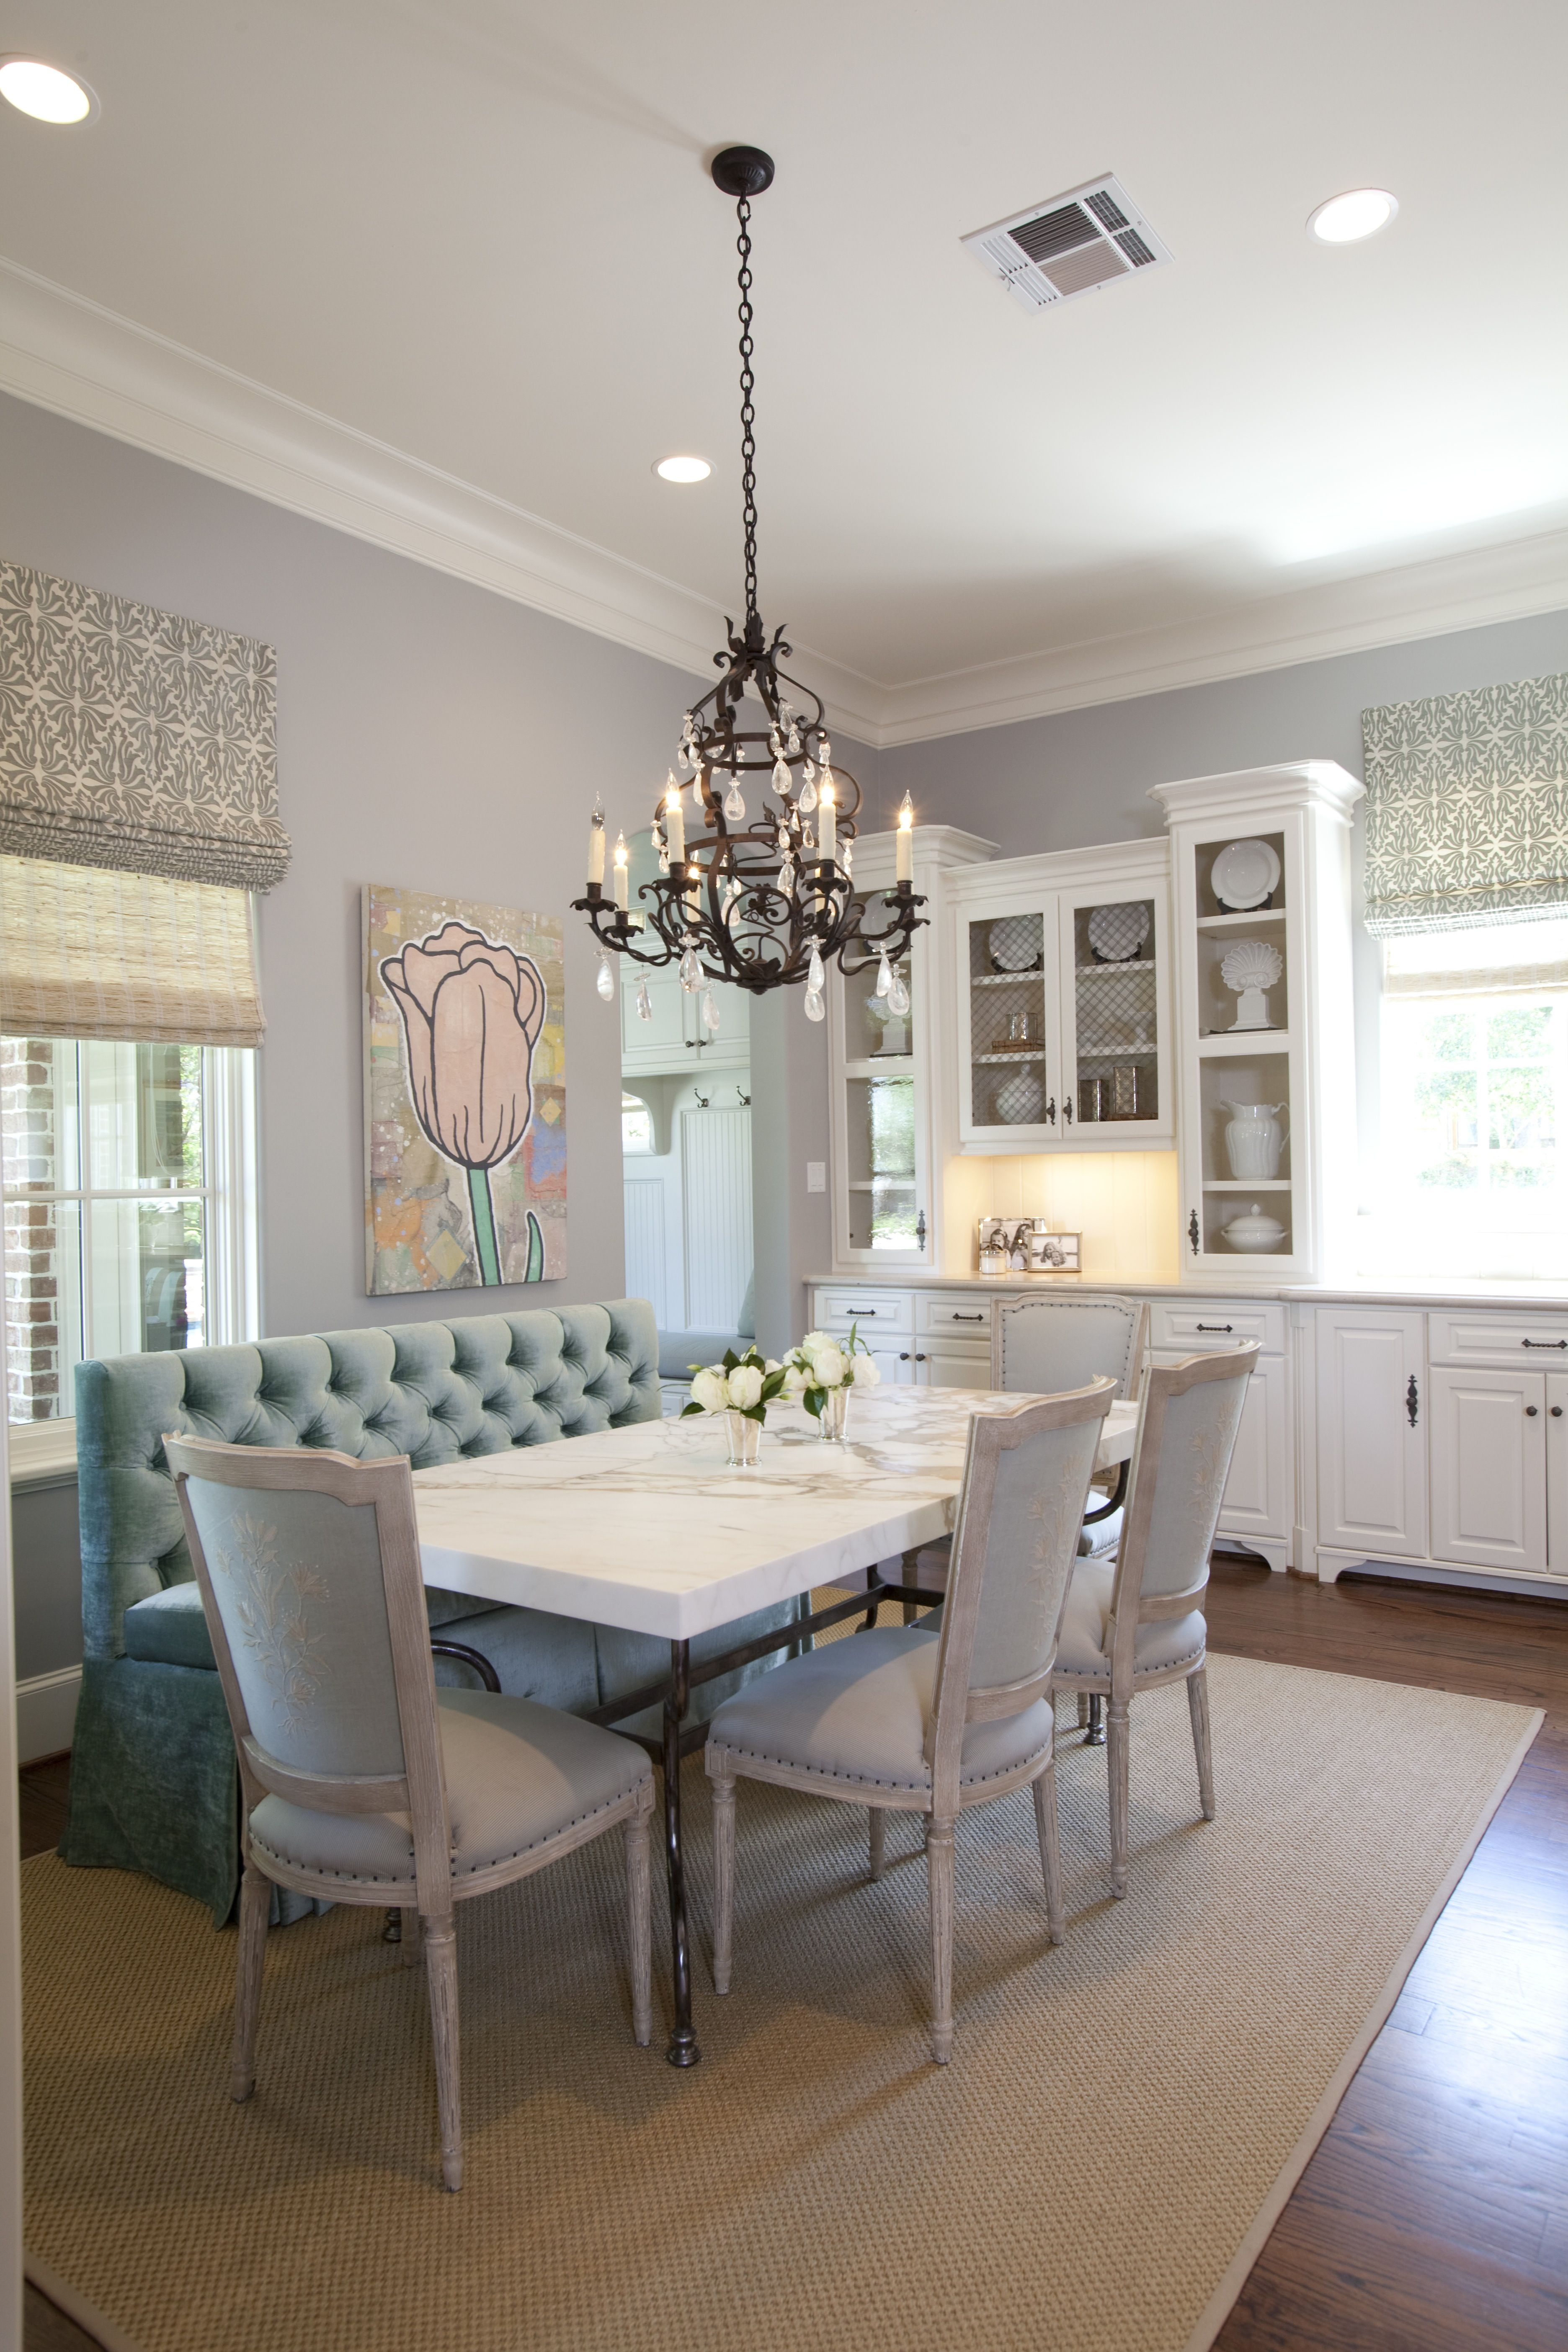 15 Dining Spaces With Banquette Bench Seating Dining Room